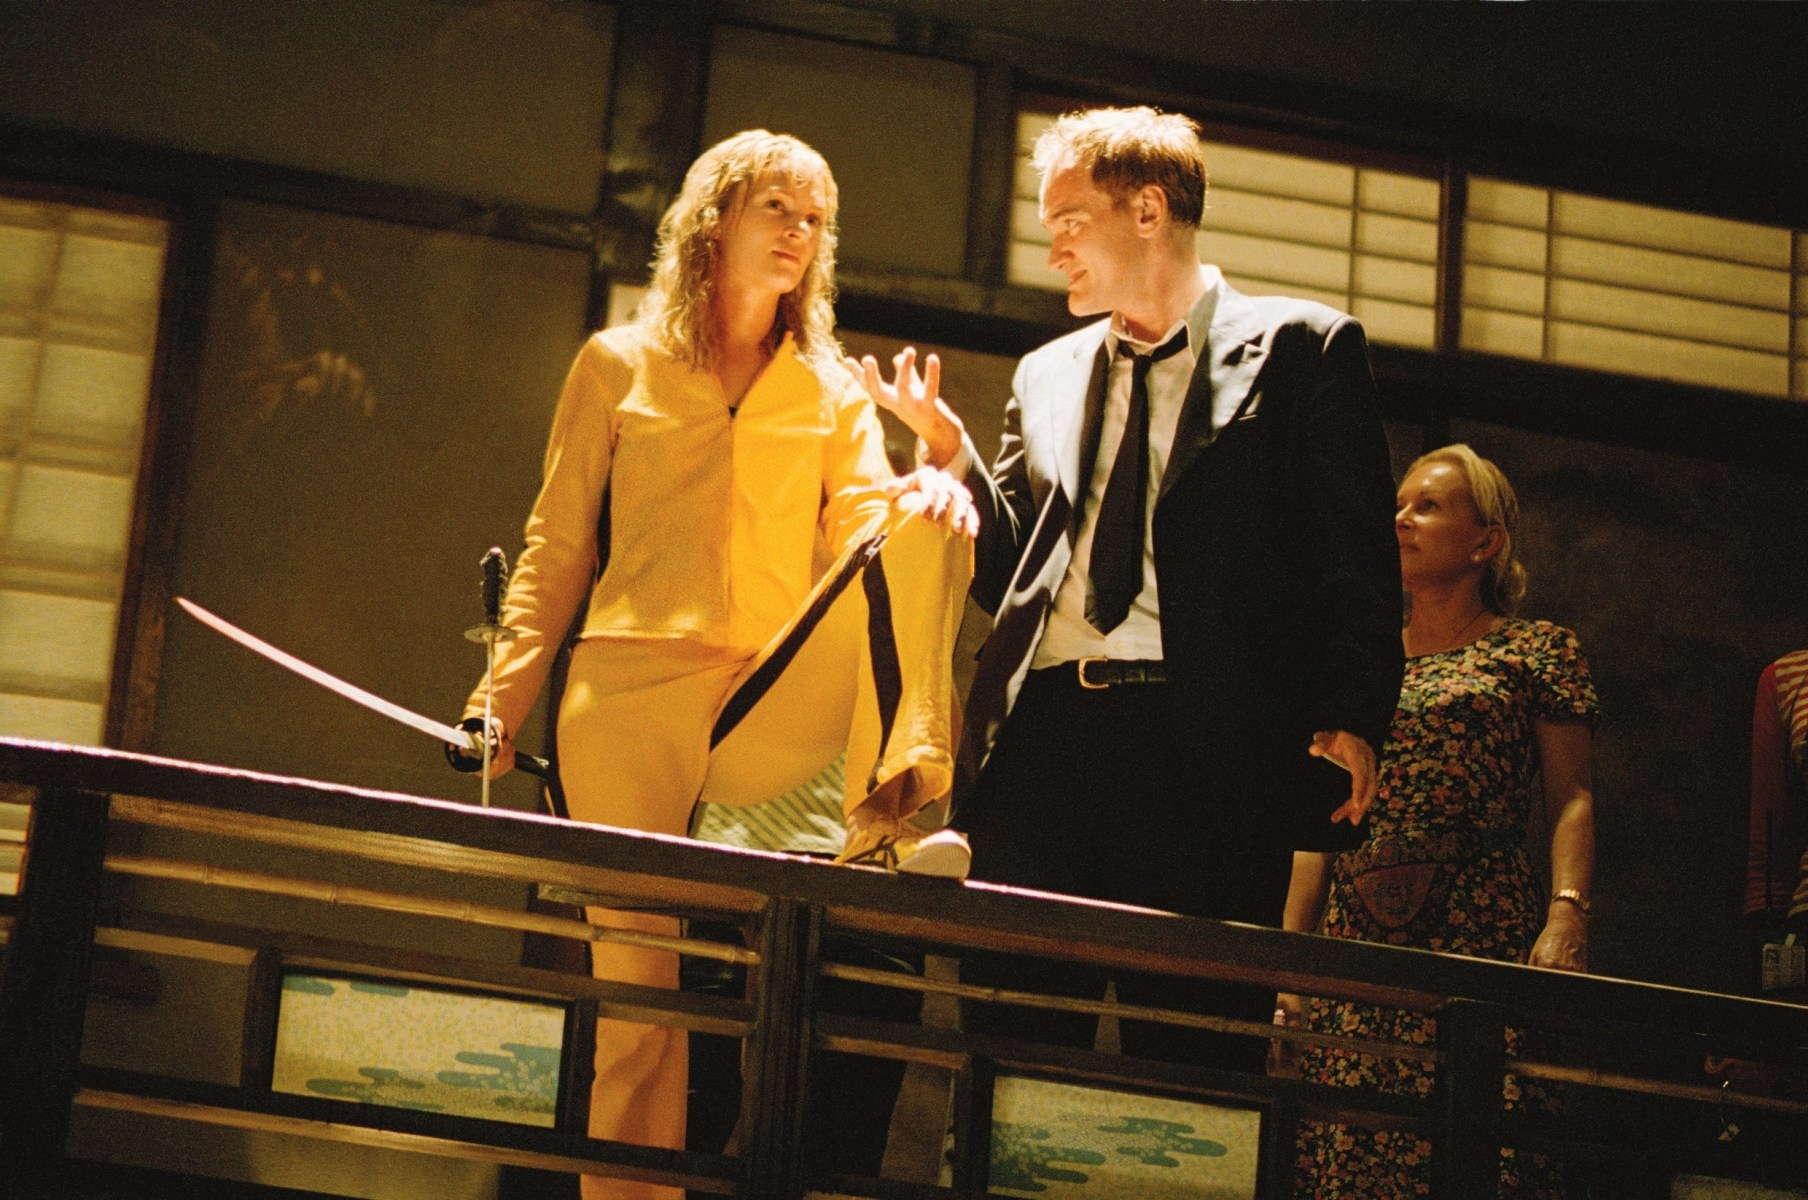 Kill Bill Vol. 1(2003) Behind the Scenes